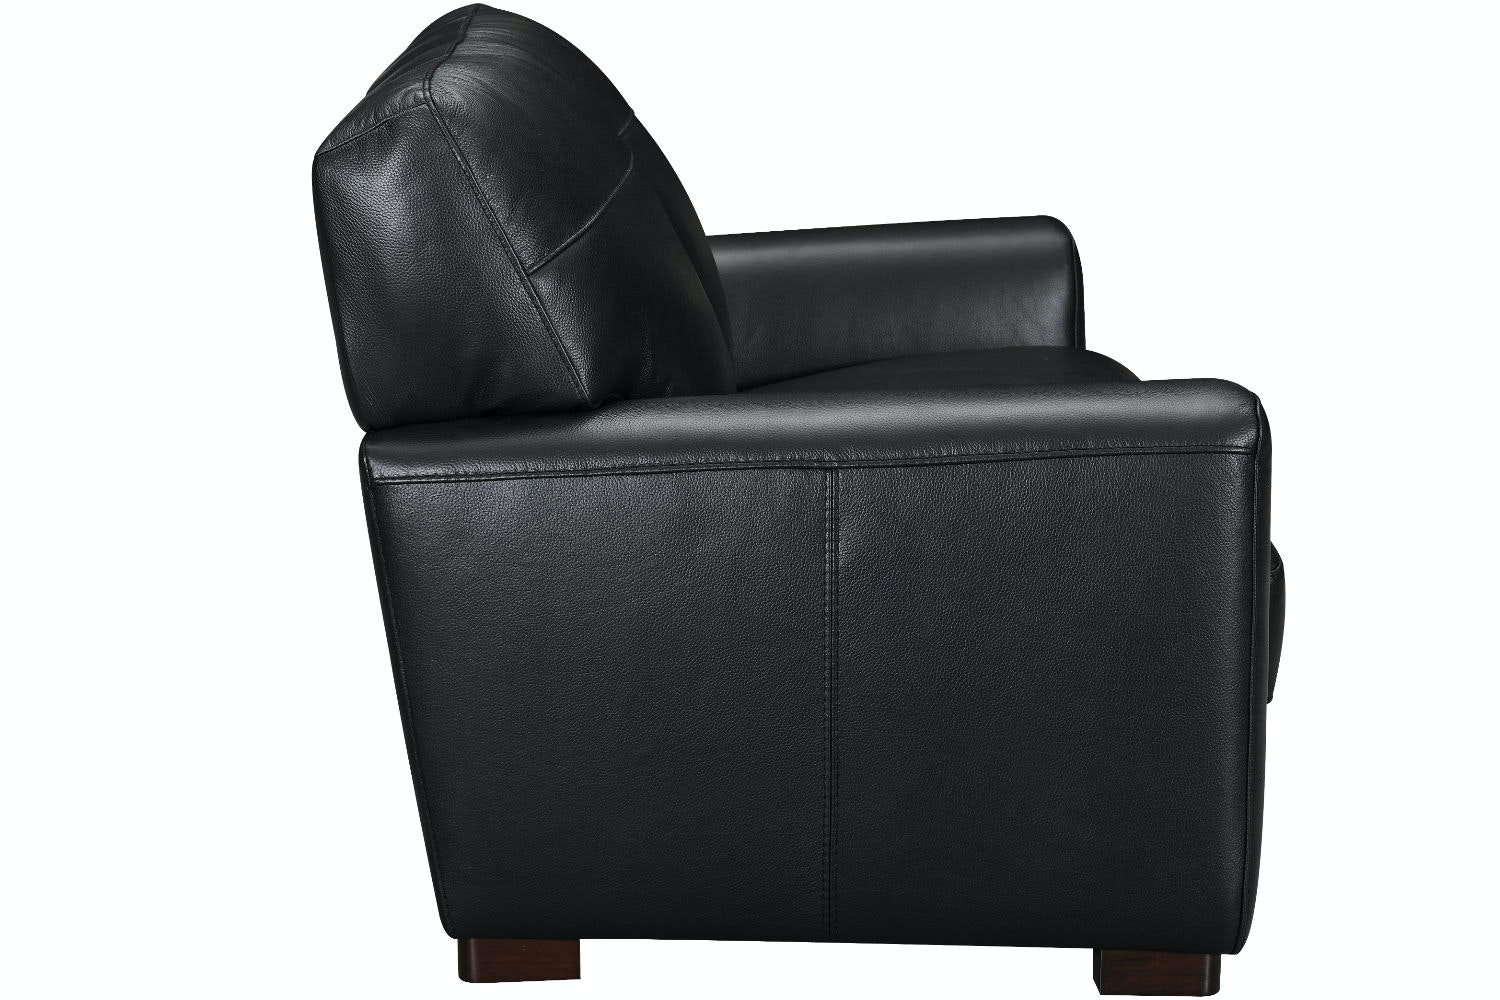 Frisby 2 Seater Sofa